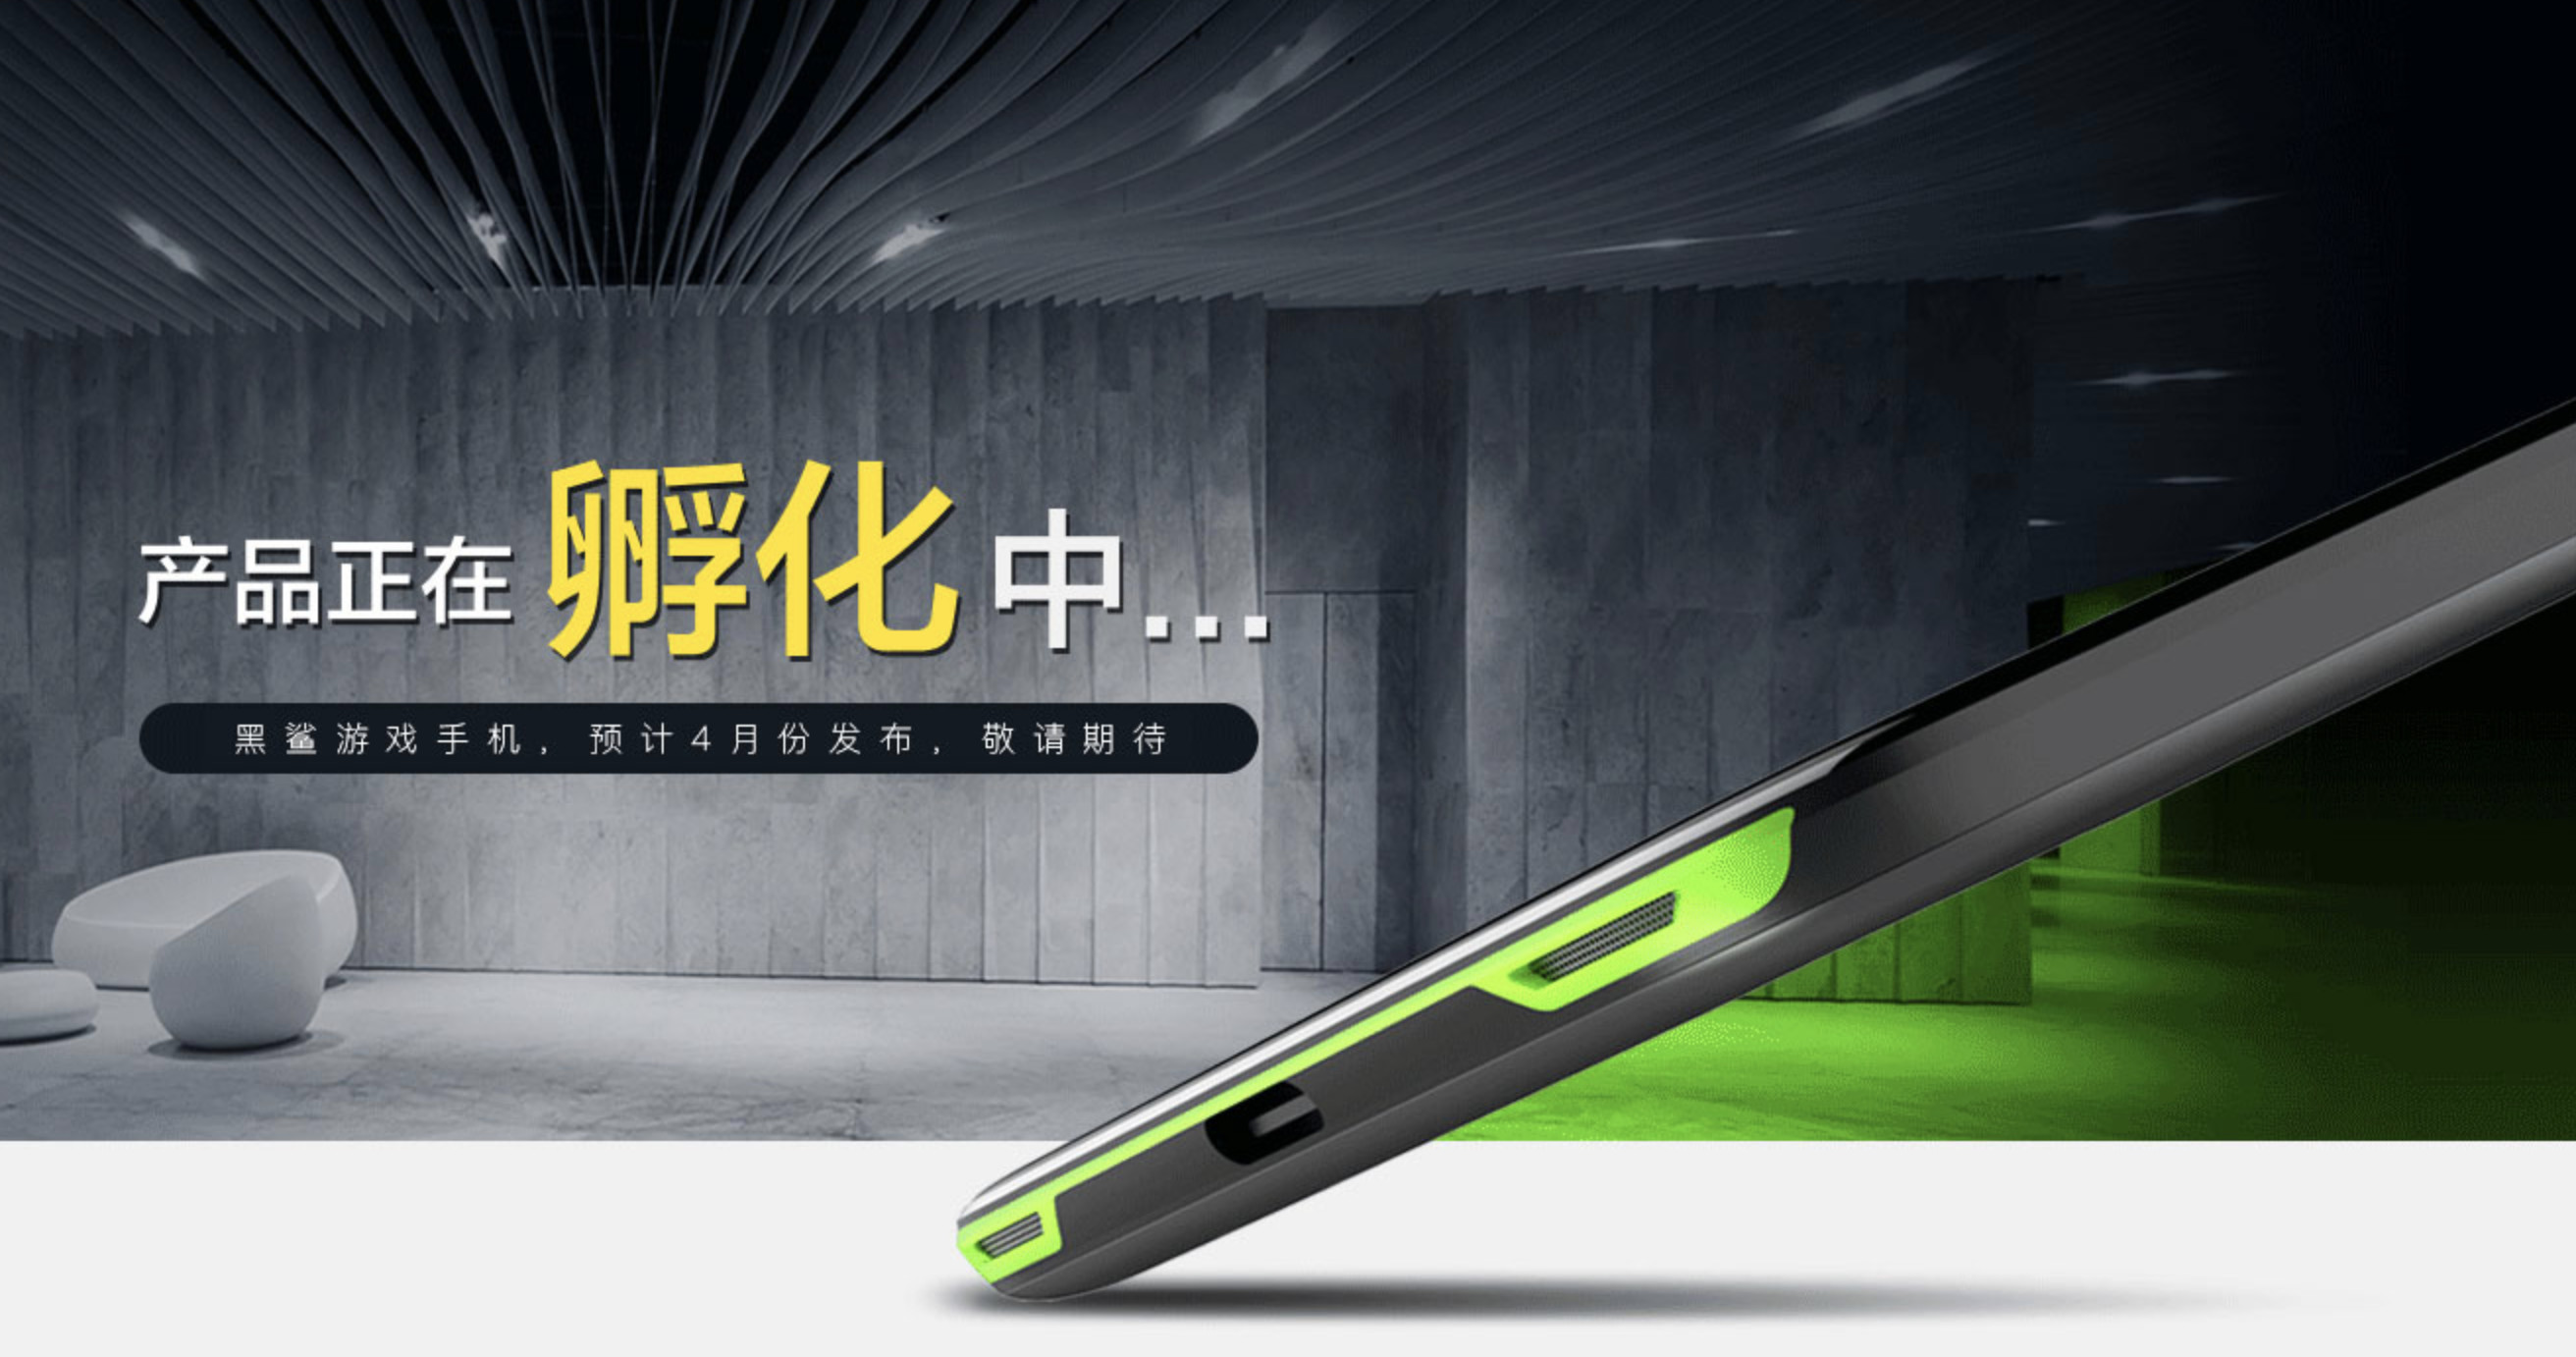 Xiaomi's gamer-centric phone to be launched on 13th April